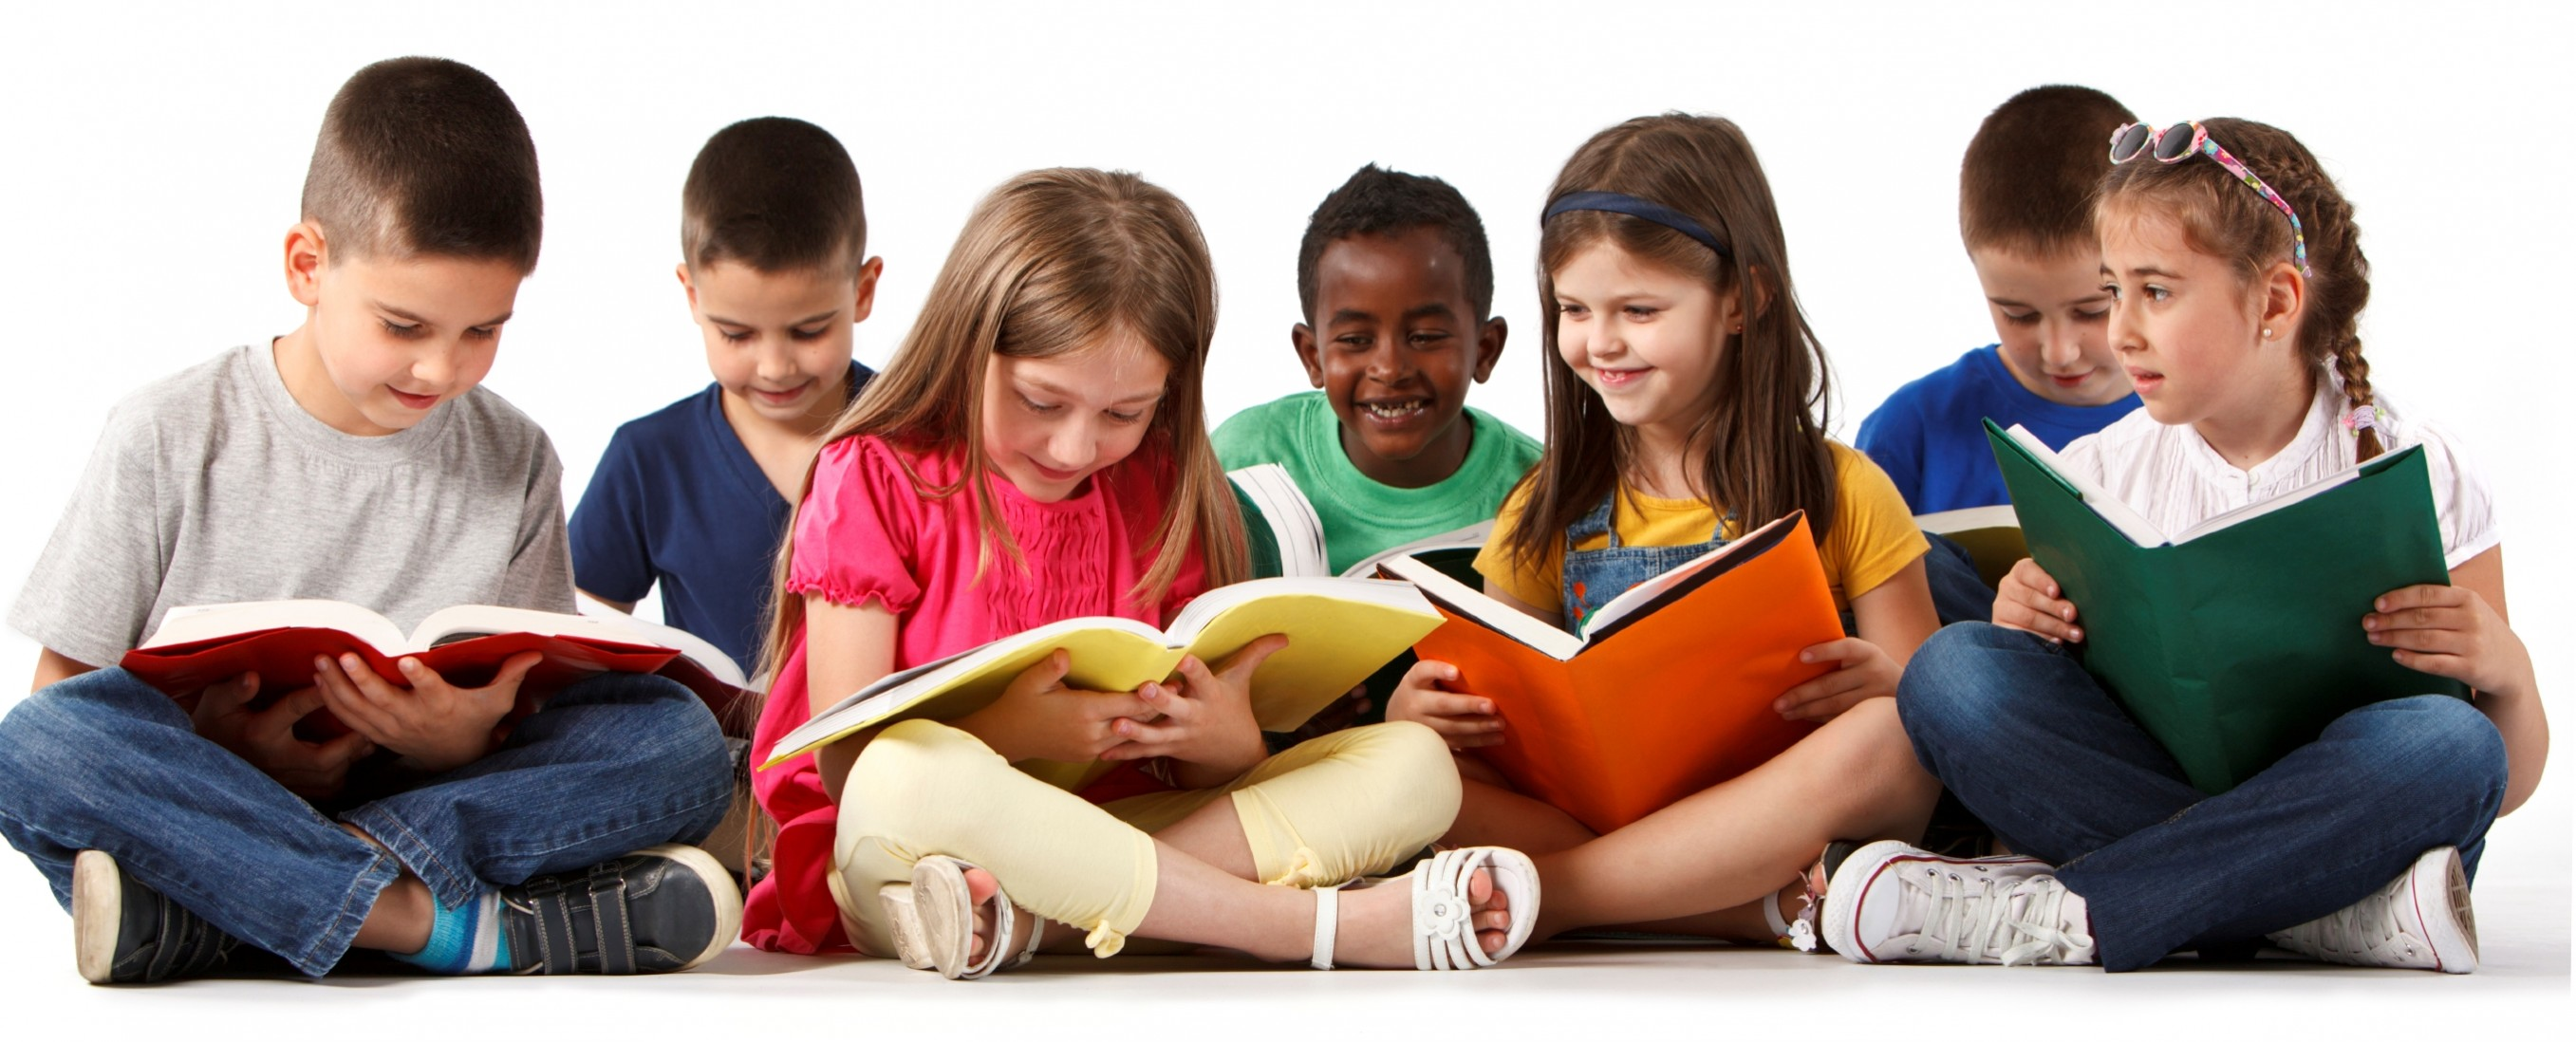 PNG HD Of Kids Reading - 131558